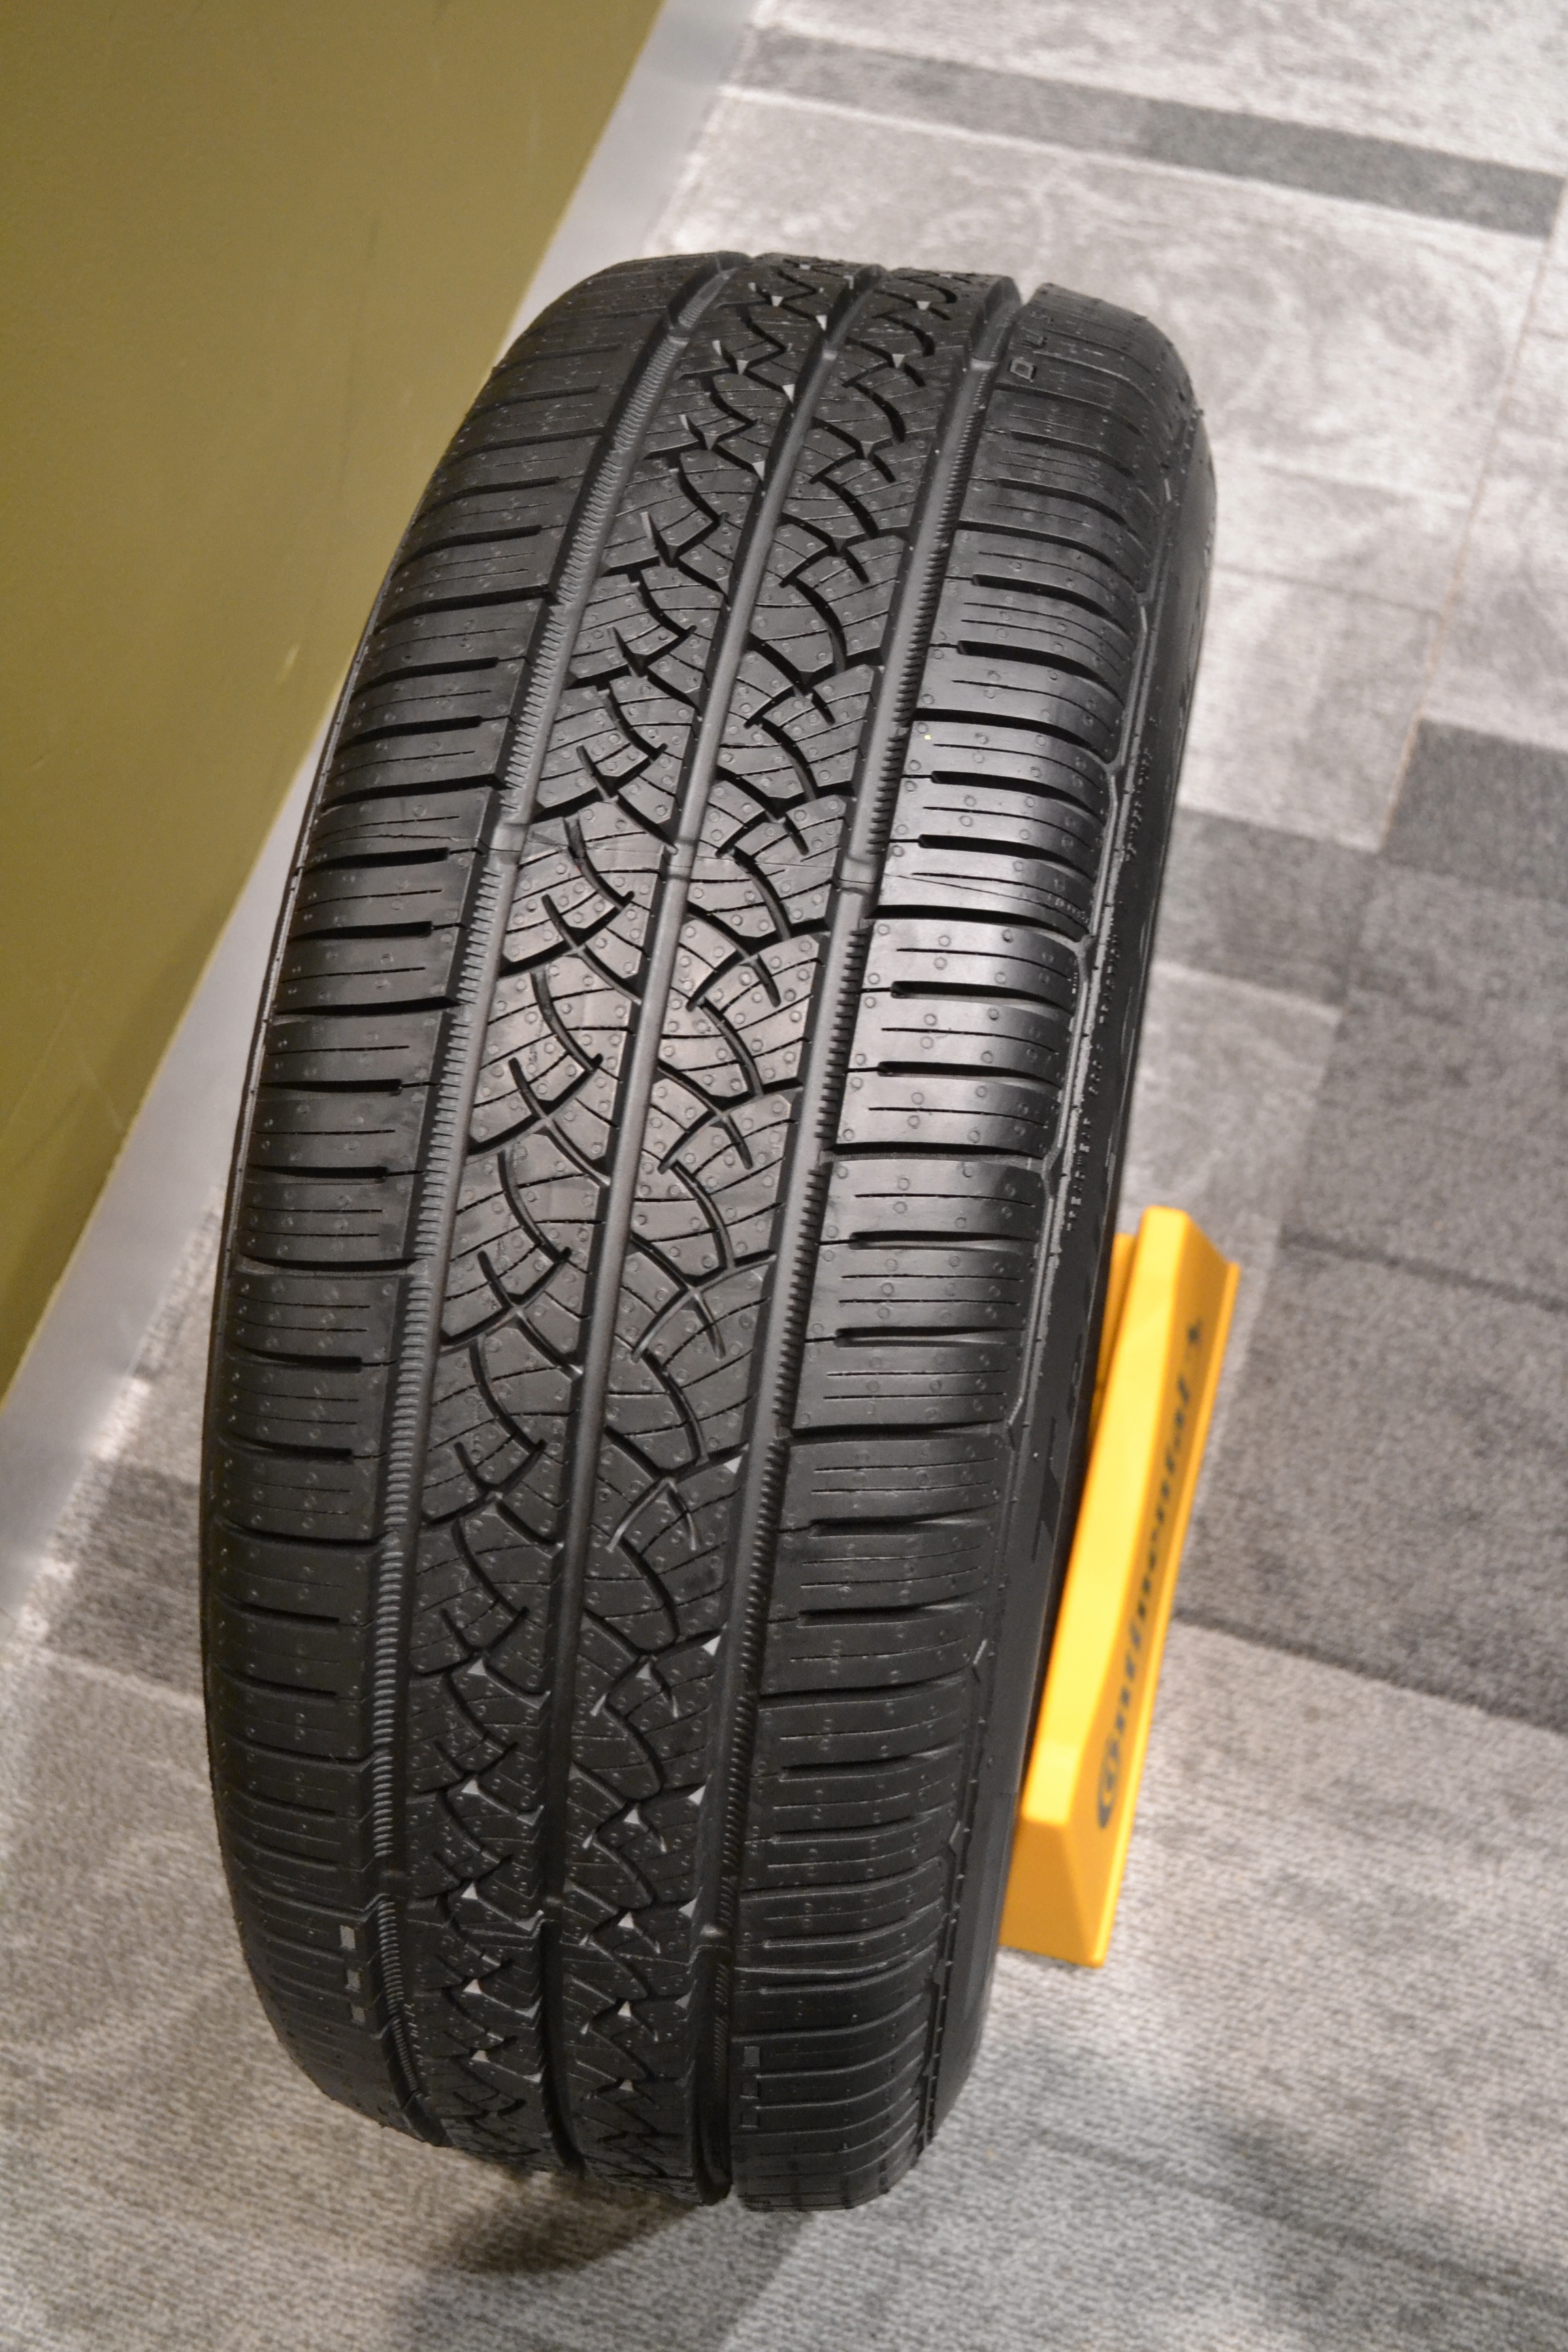 Conti Tells Its Gold Dealers About 2 Next Generation Tires